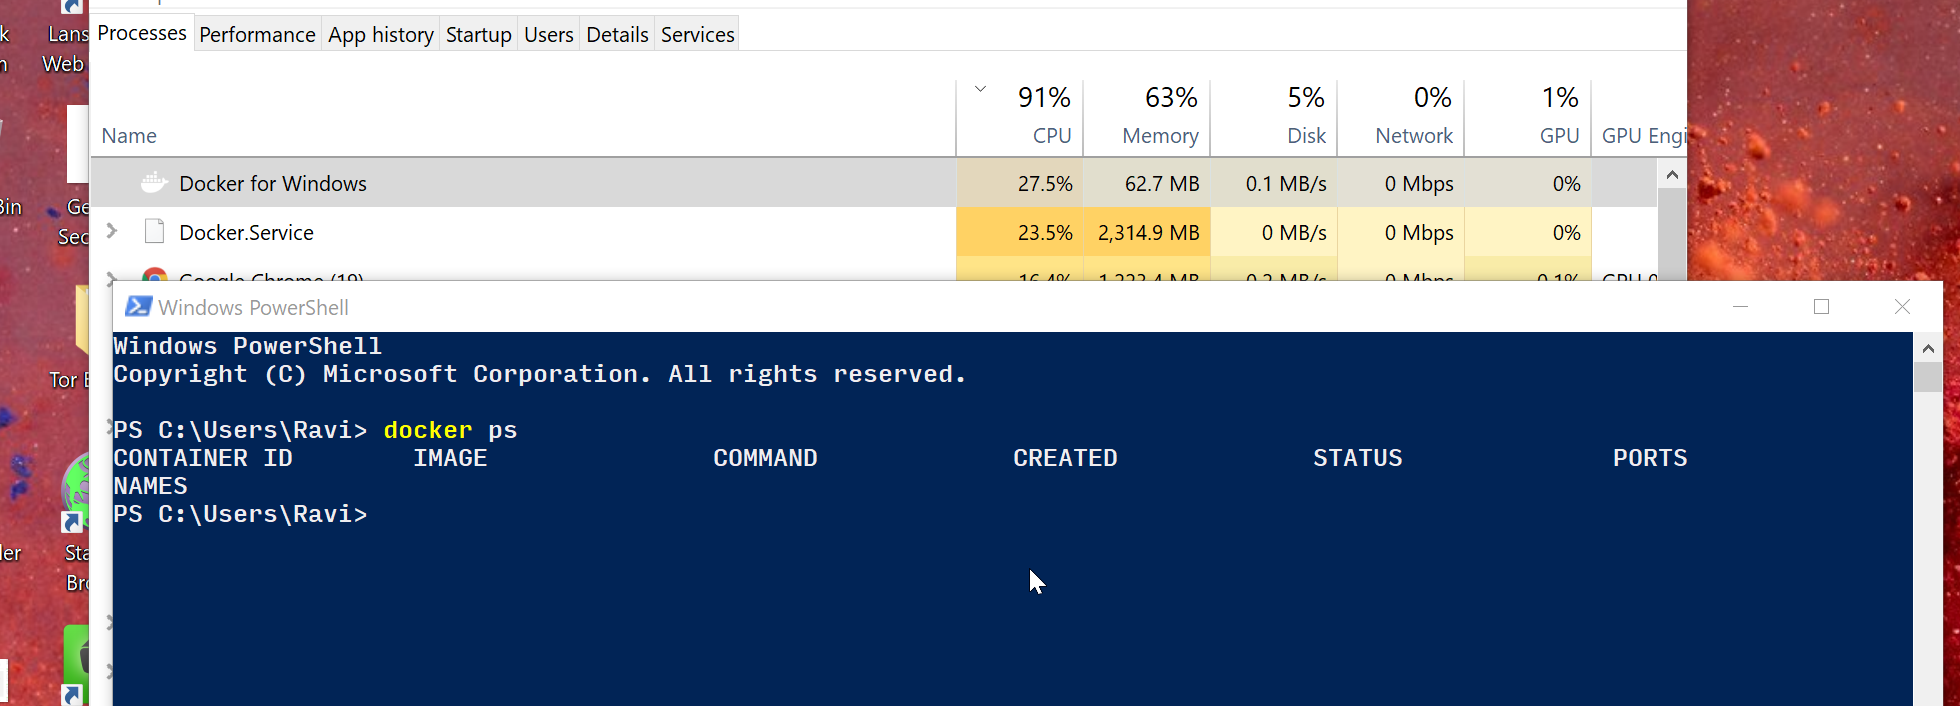 Windows 10 Docker processes consuming high CPU with no